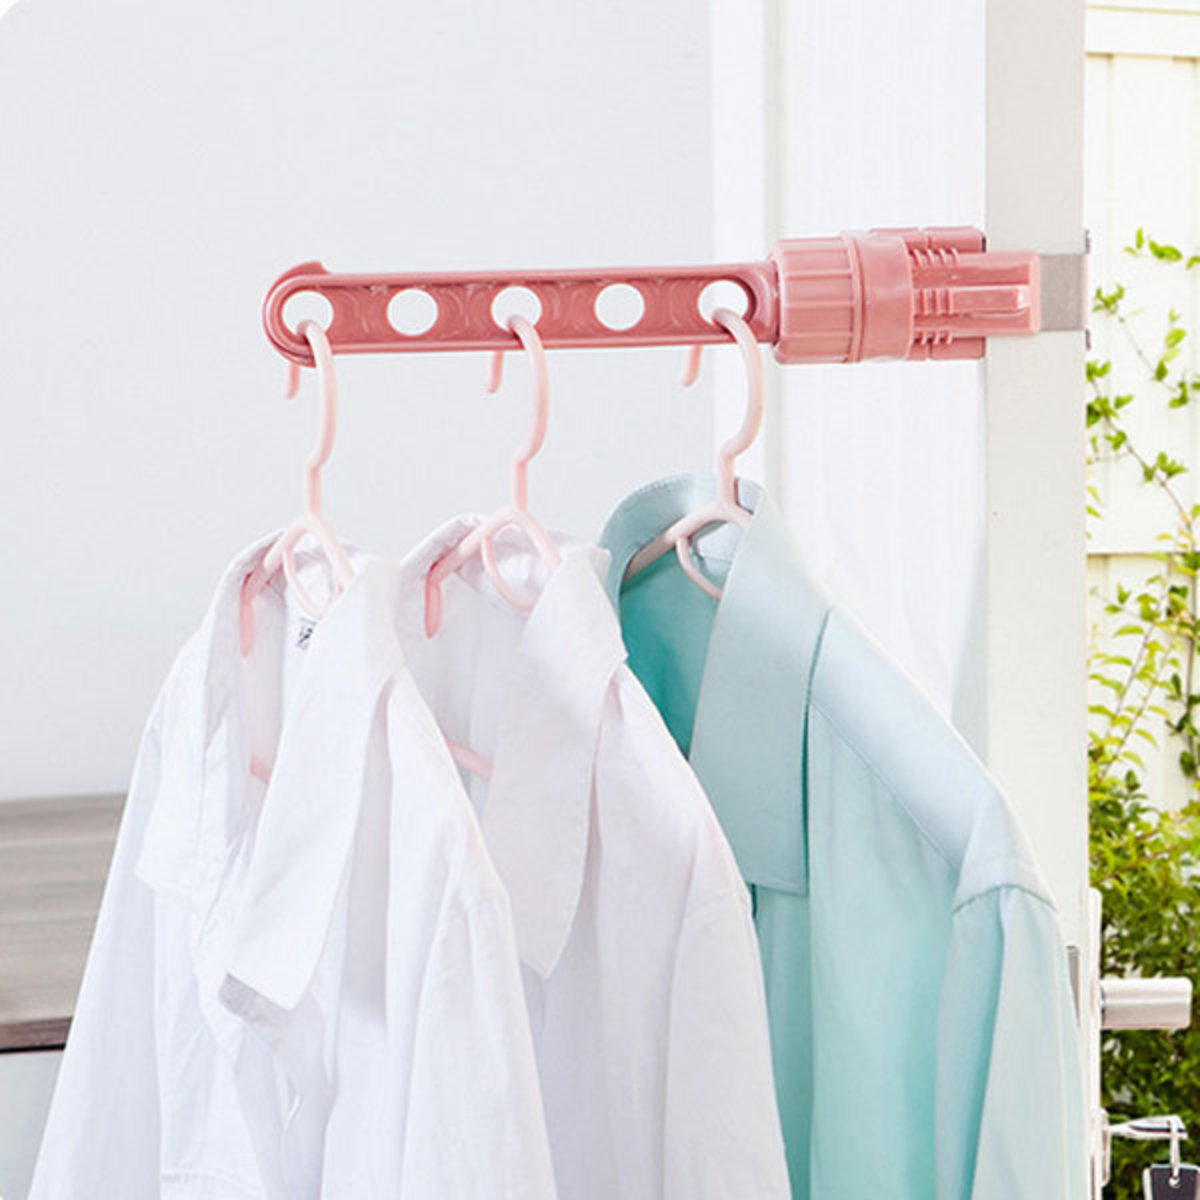 Single pole stainless steel drying rack